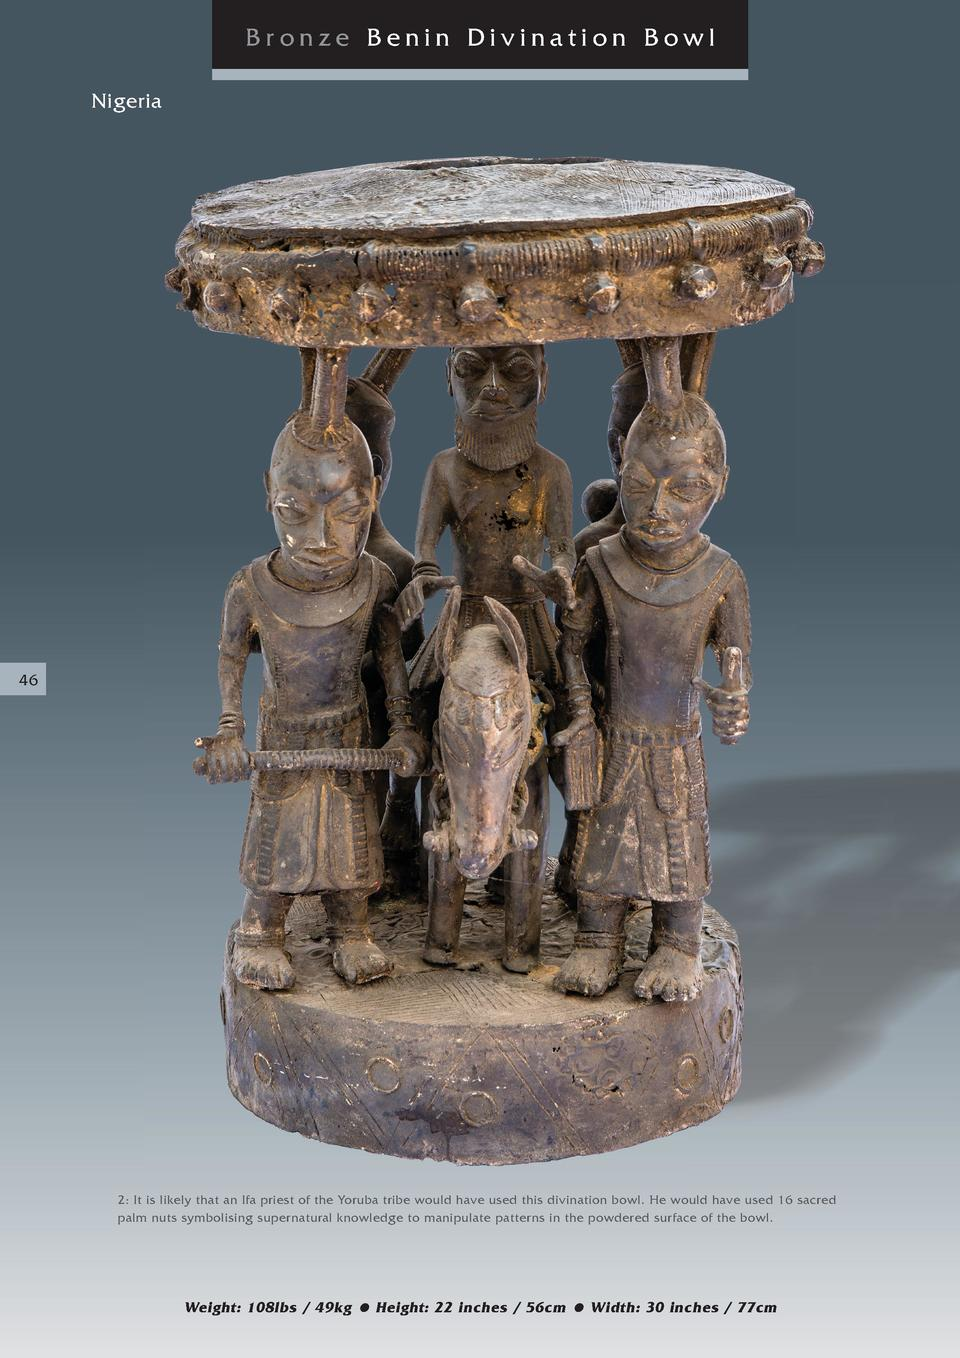 Bronze Benin Divination Bowl Nigeria  46  2  It is likely that an Ifa priest of the Yoruba tribe would have used this divi...